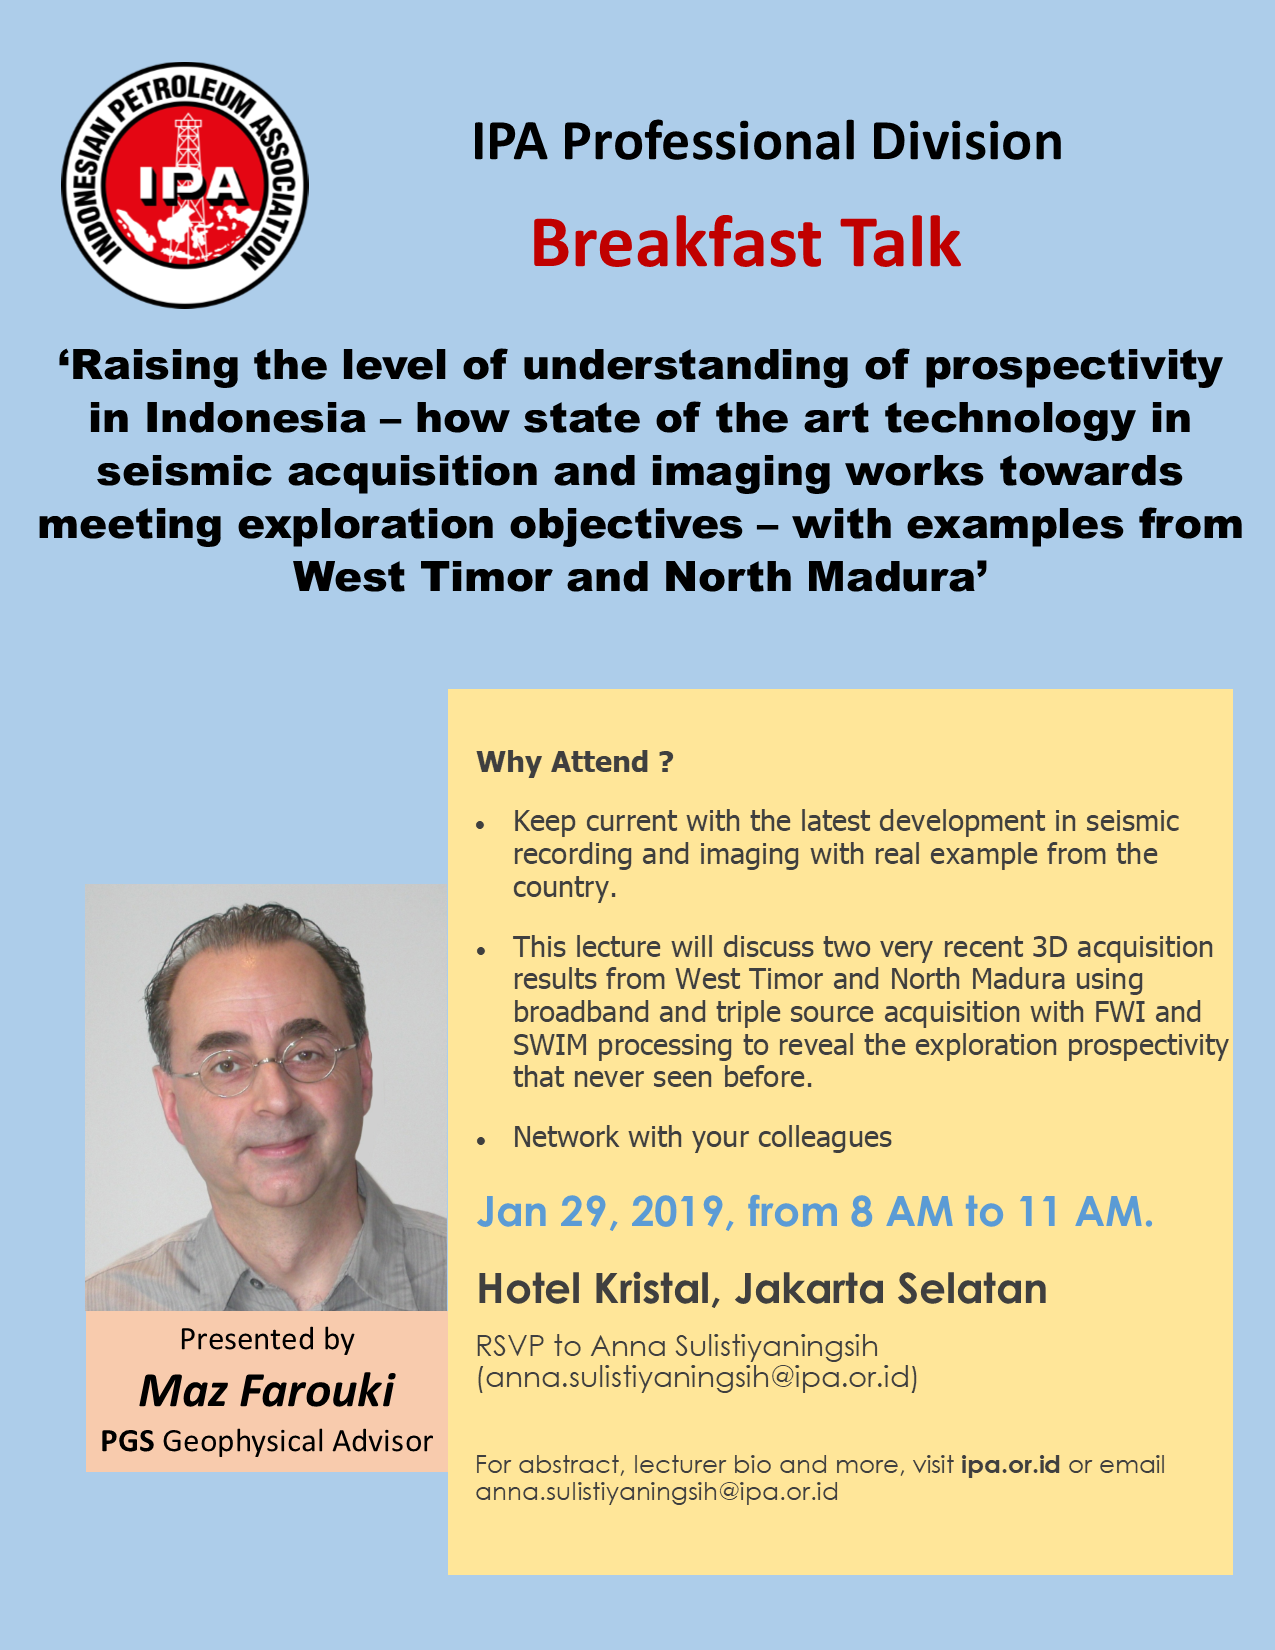 Breakfast Talk - IPA Professional Division